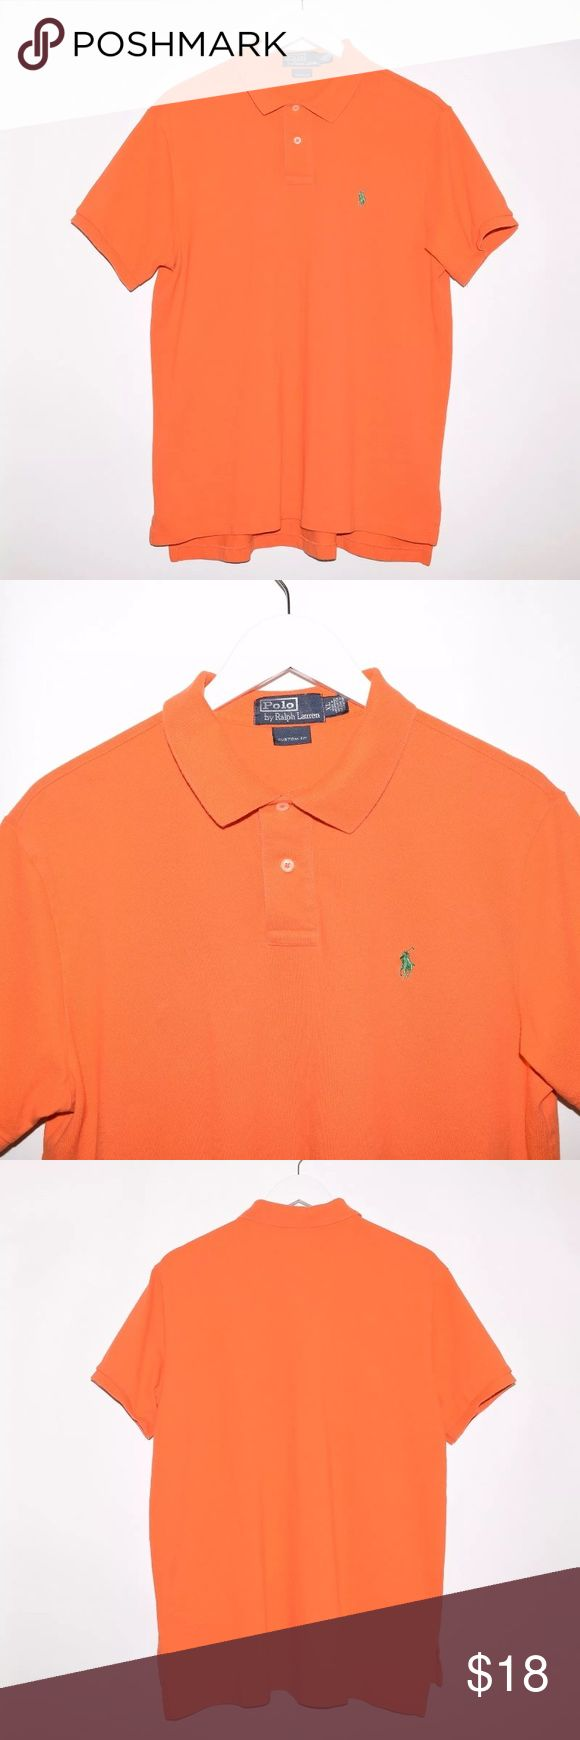 Polo Ralph Lauren Custom Fit Cotton Polo Shirt Brand: Polo Ralph Lauren Item name: Custom Fit Cotton Polo Shirt  		 Color: Orange / Green Condition: This is a pre-owned item. This item is in excellent condition with no stains, rips, holes, etc. Comes from a smoke free home. Size: XL Measurements:  Pit to Pit - 23 inches Shoulder to base -  Front: 27 inches Back: 29 inches Polo by Ralph Lauren Shirts Polos